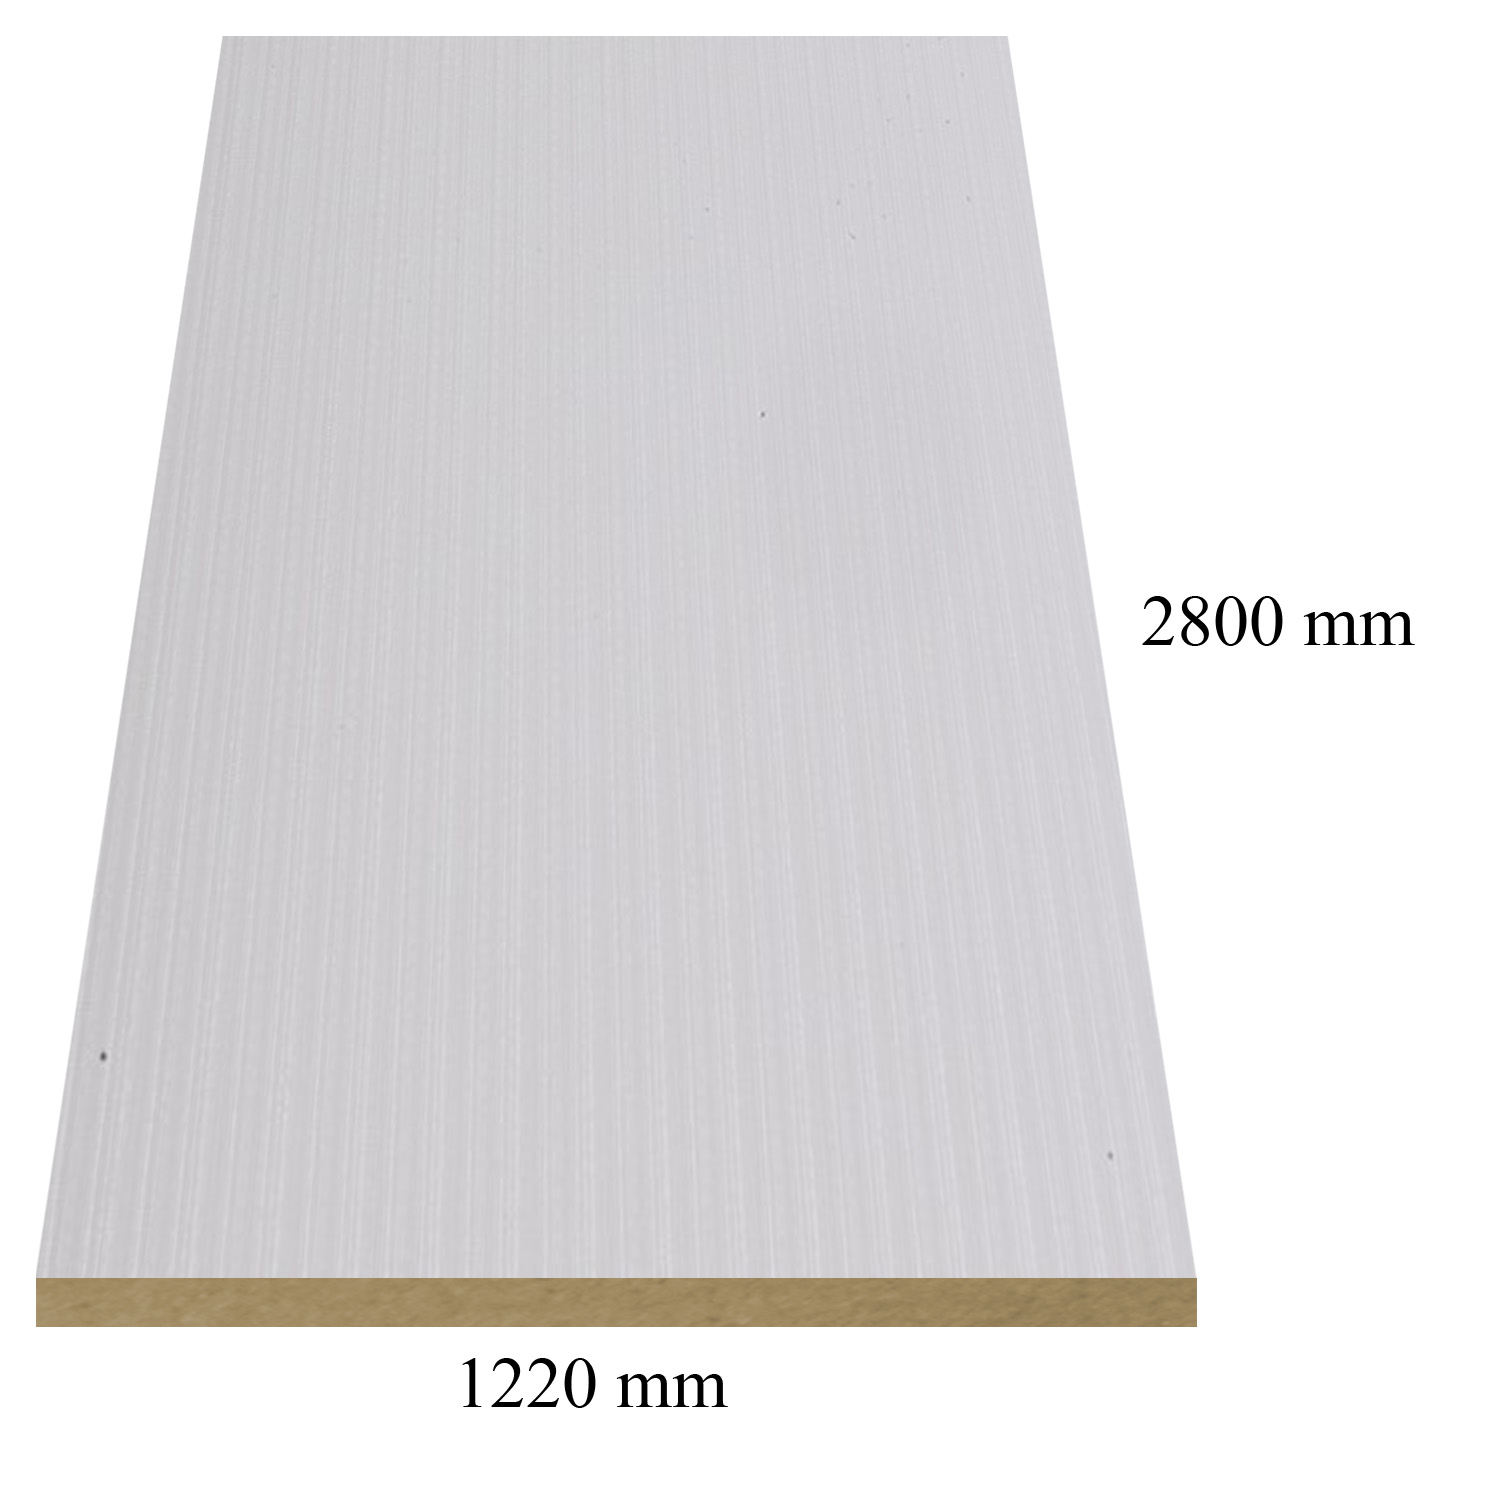 717 Powder high gloss - PVC coated 18 mm MDF